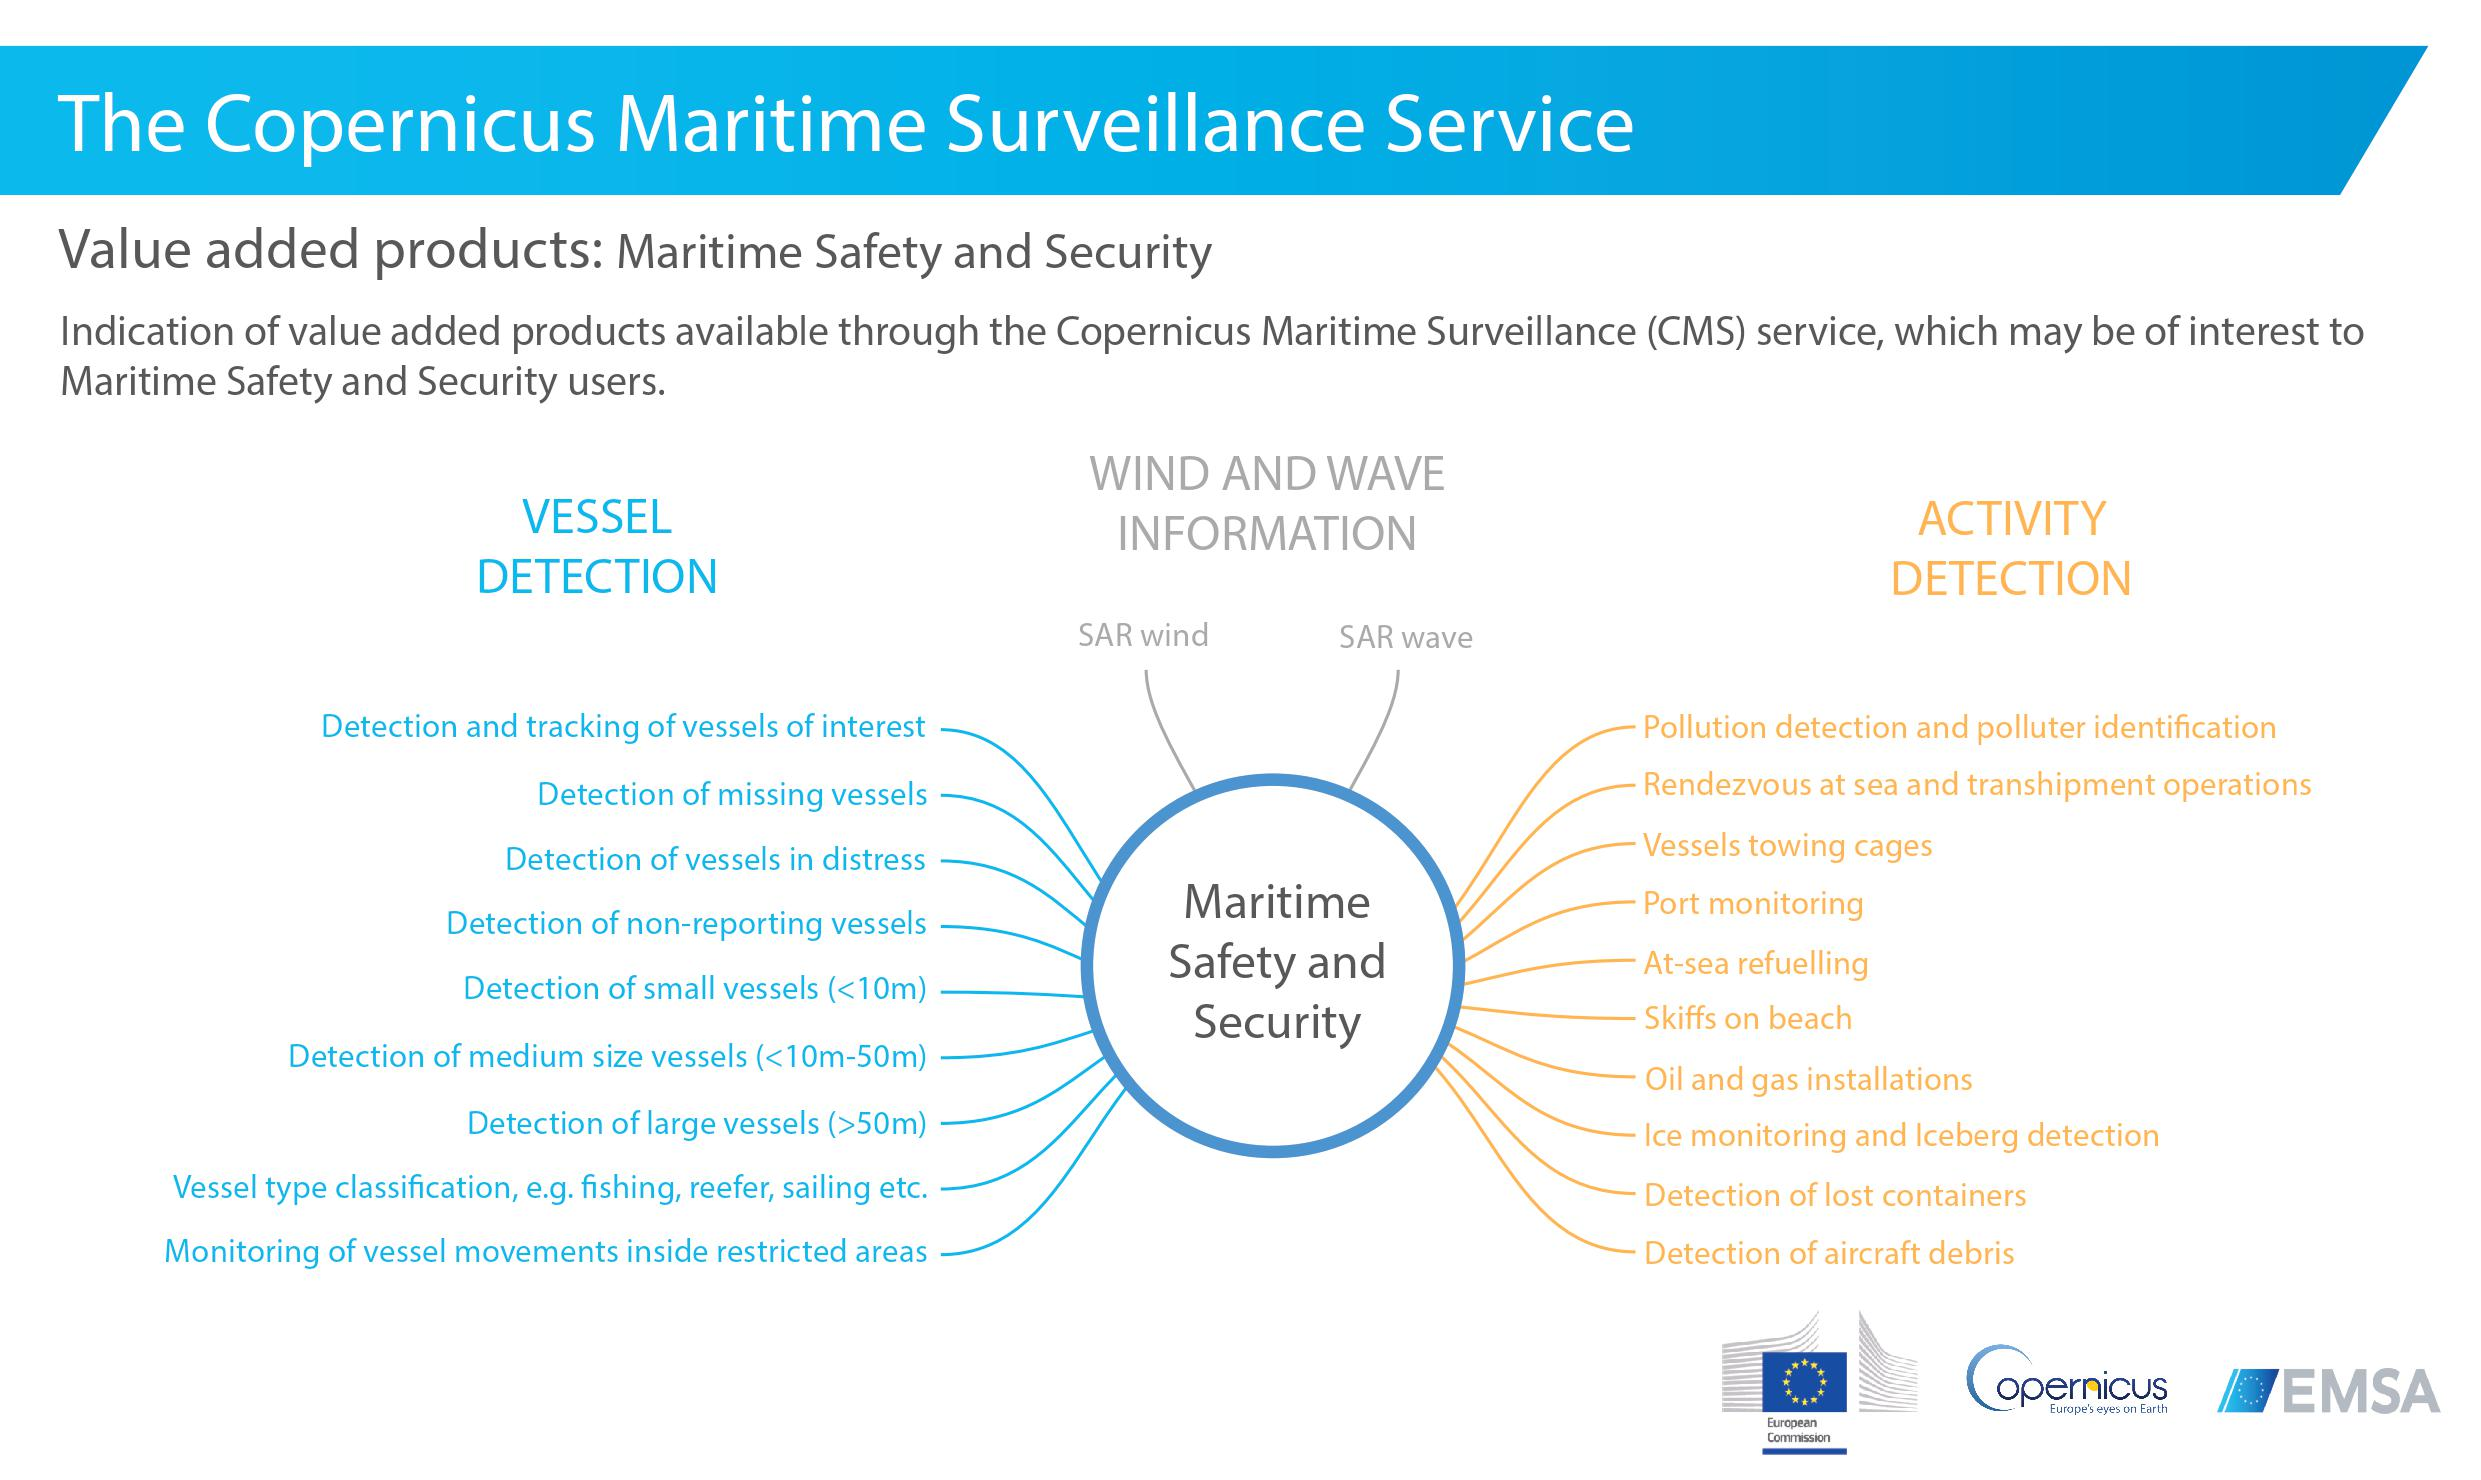 CMS VAP Maritime Safety and Security Image 1